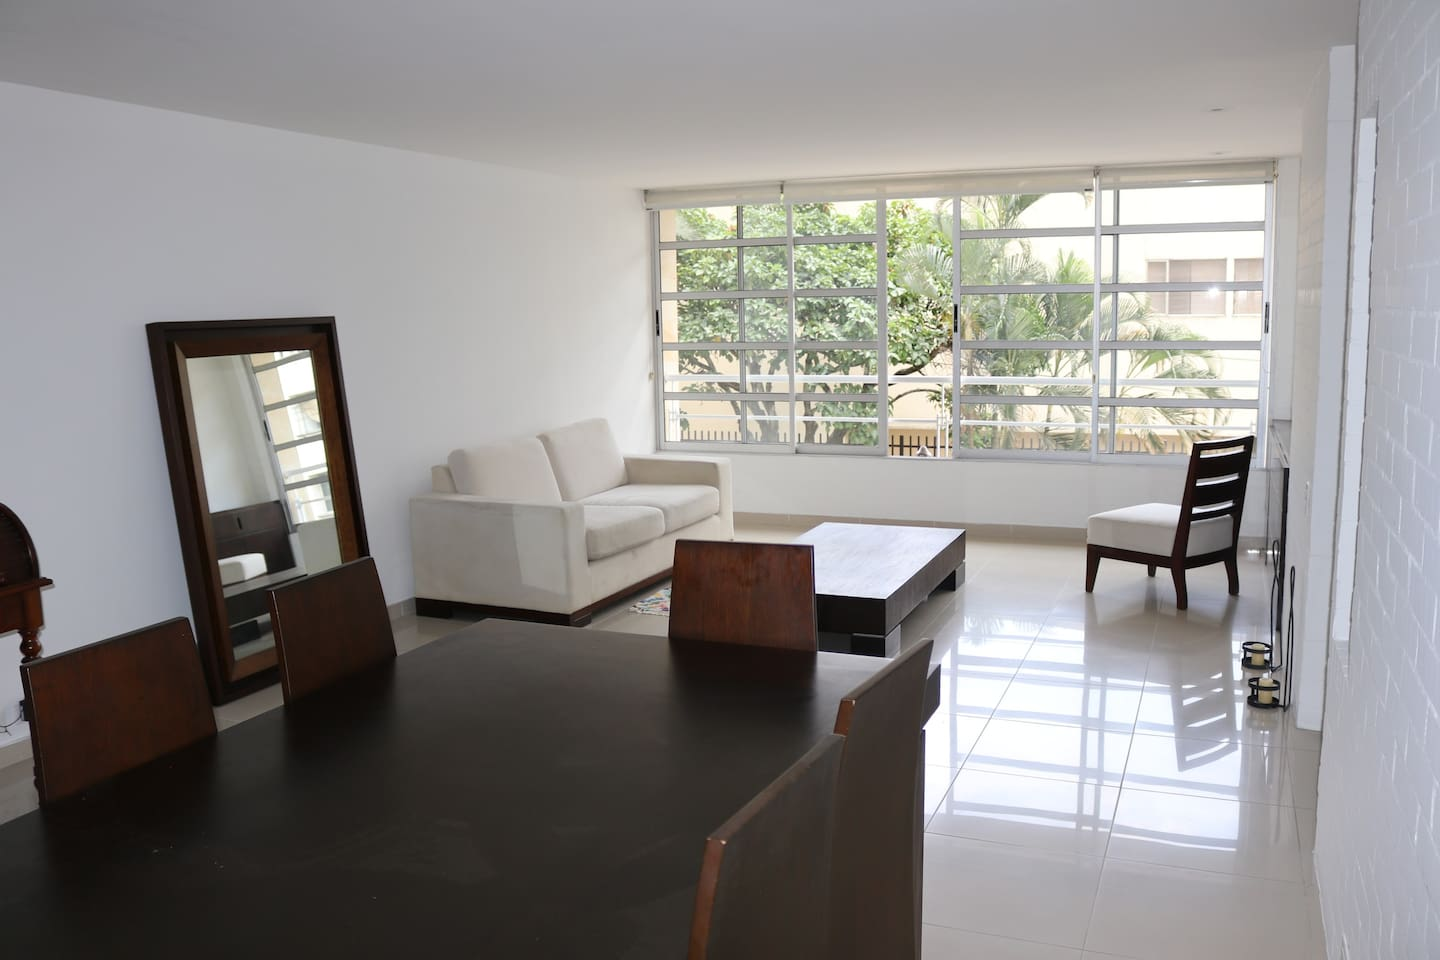 Lovely Apartment In Cali Large Double Room to Rent Long Term in Upscale Neighbourhood